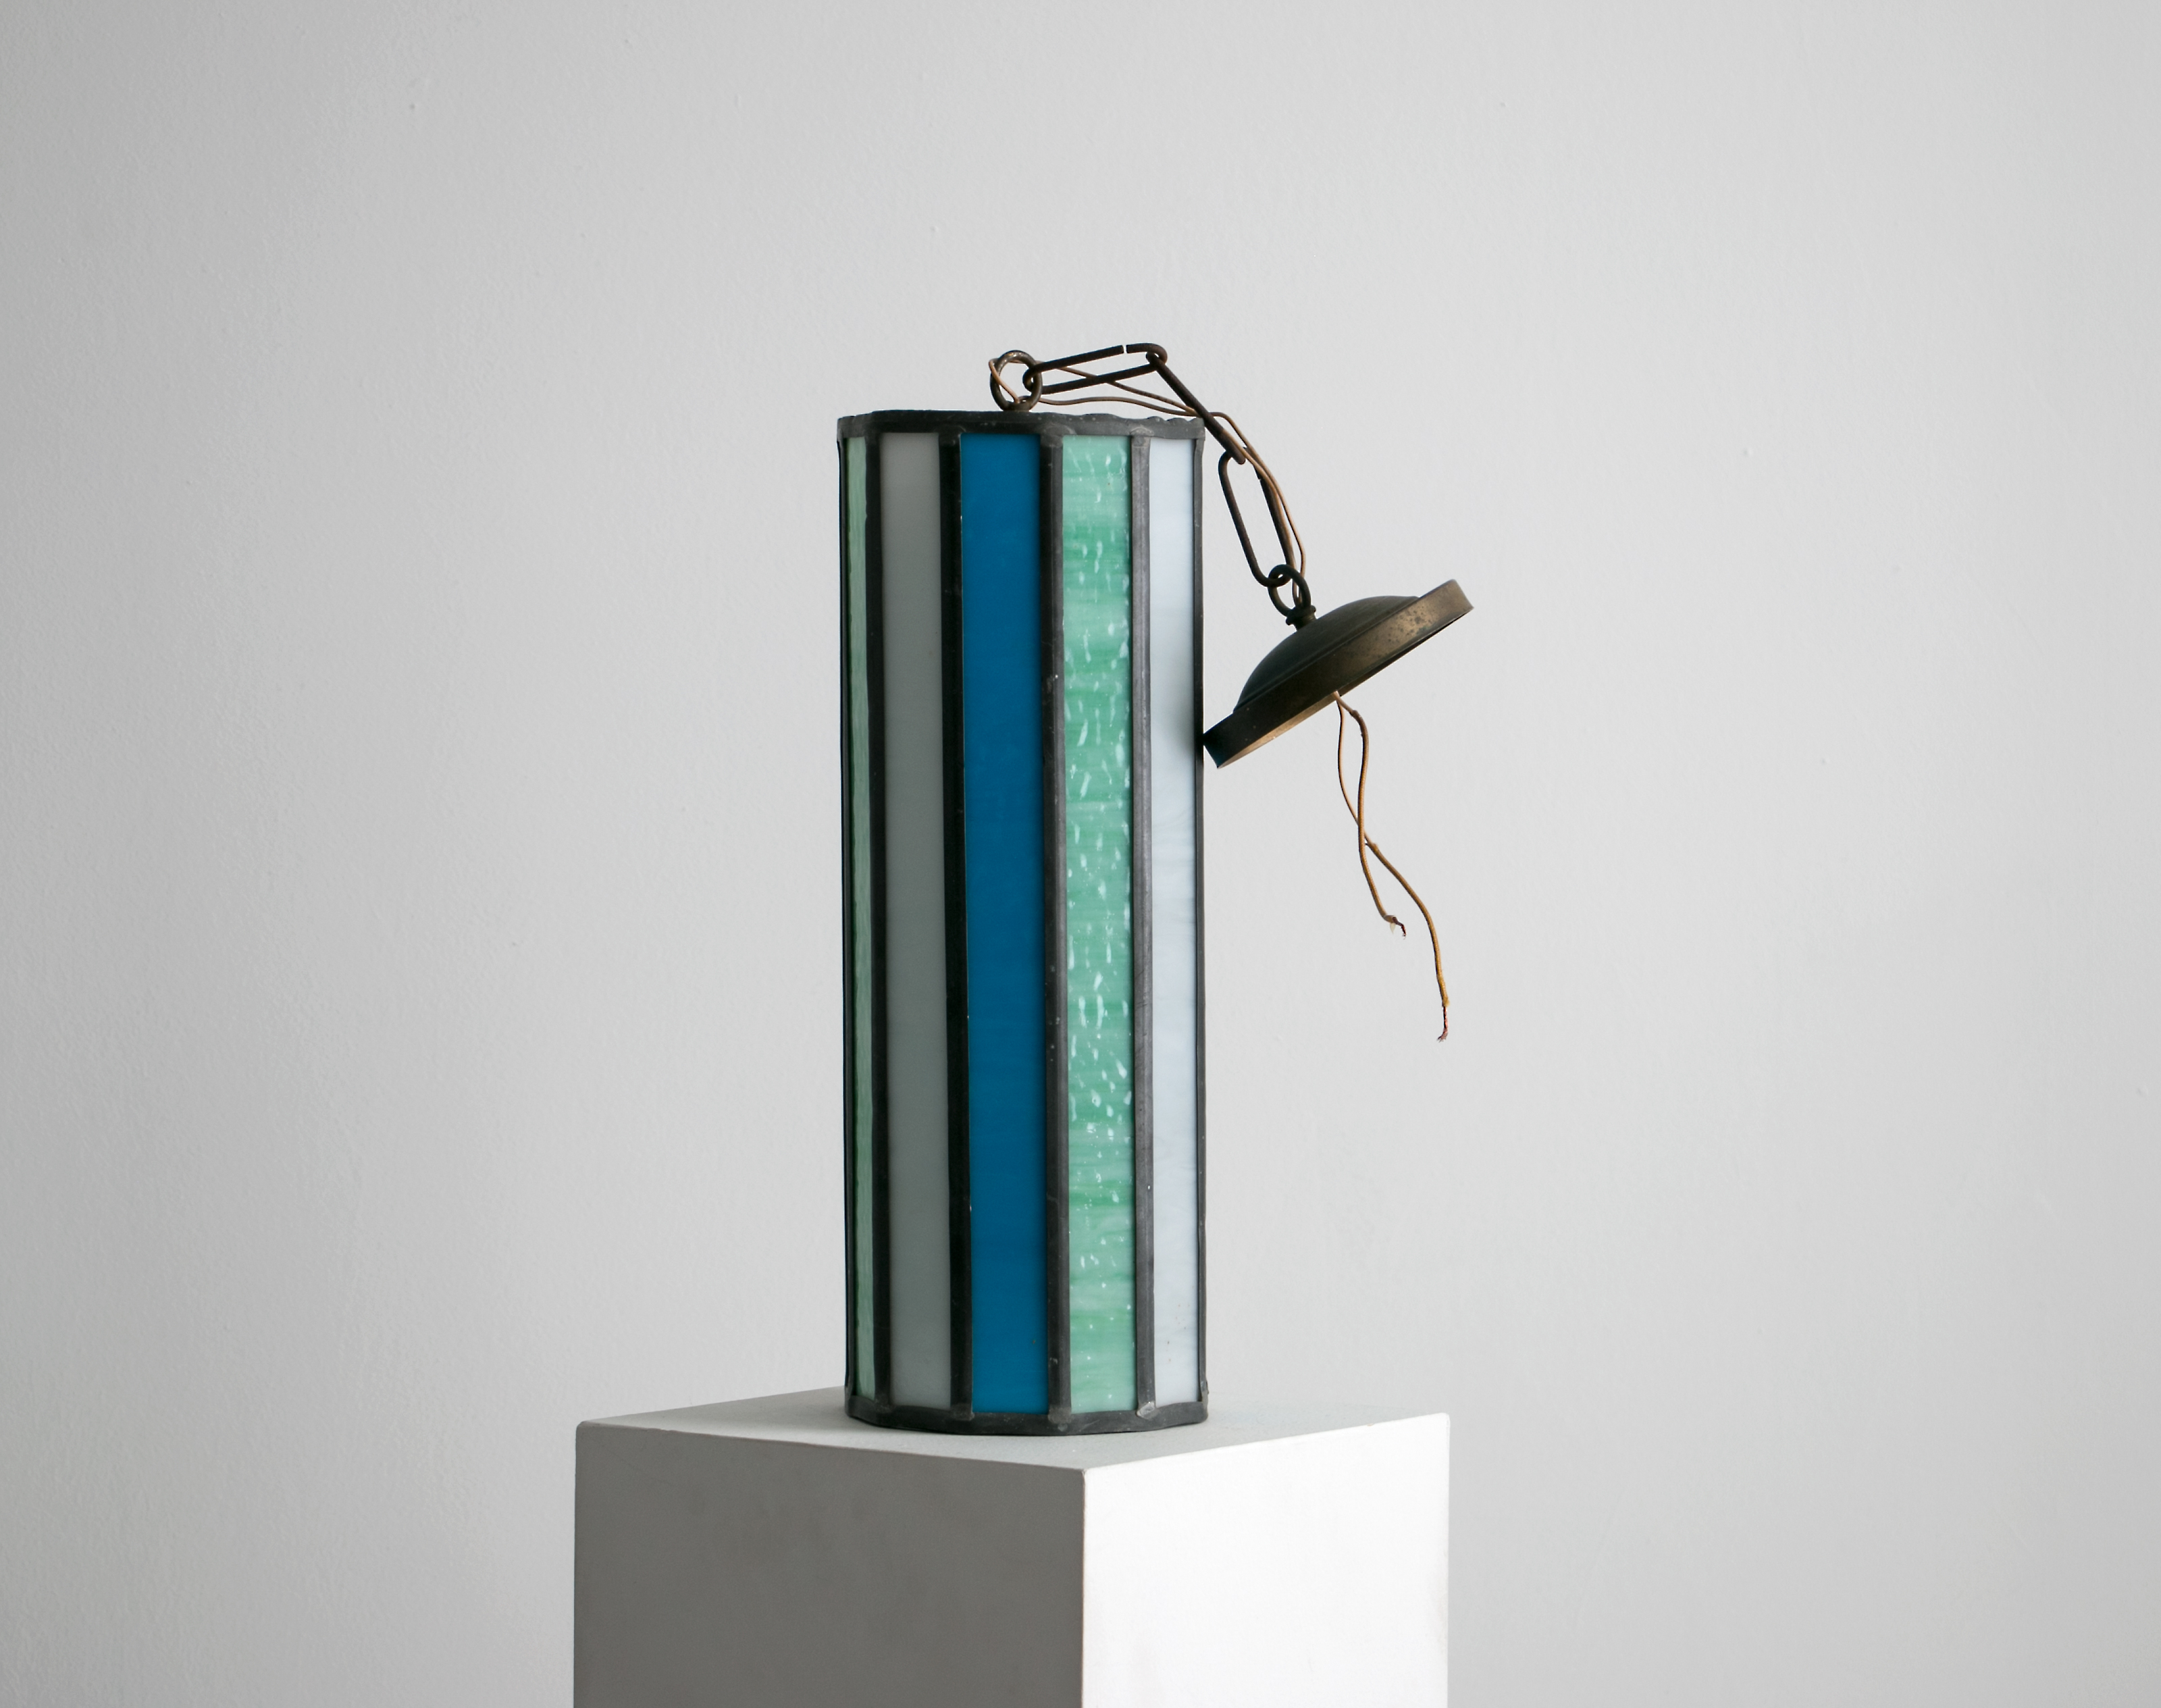 """eautiful Mid Century Leaded Glass Pendant Light, 1950's - 1960's // 16"""" tall, Stained Glass in Turquoise Green, Blue, and Milk Glass White"""